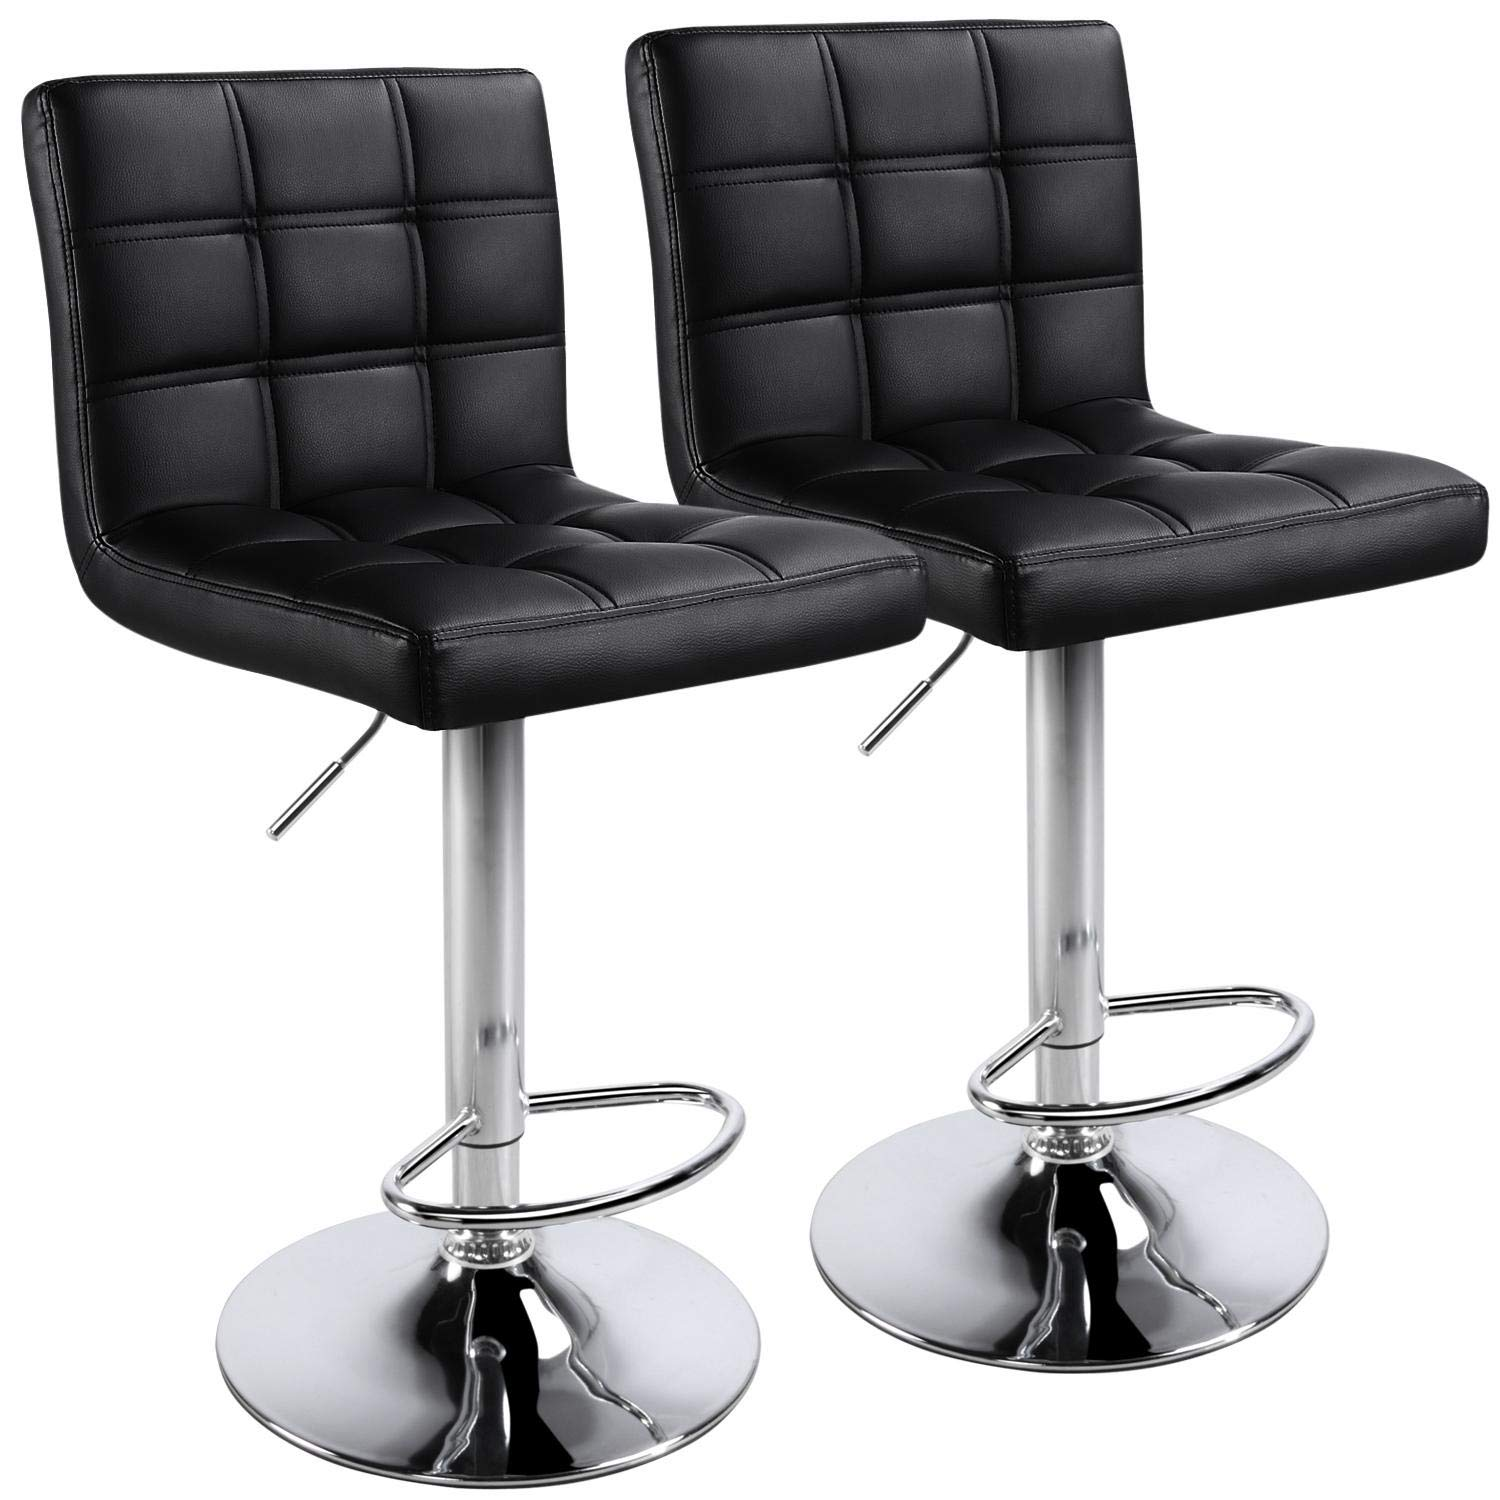 Yaheetech Bar Stools - Modern Adjustable Kitchen Island Chairs Counter Height Barstools Swivel PU Leather Chair Black 30 inches Set of 2,with Bigger Base